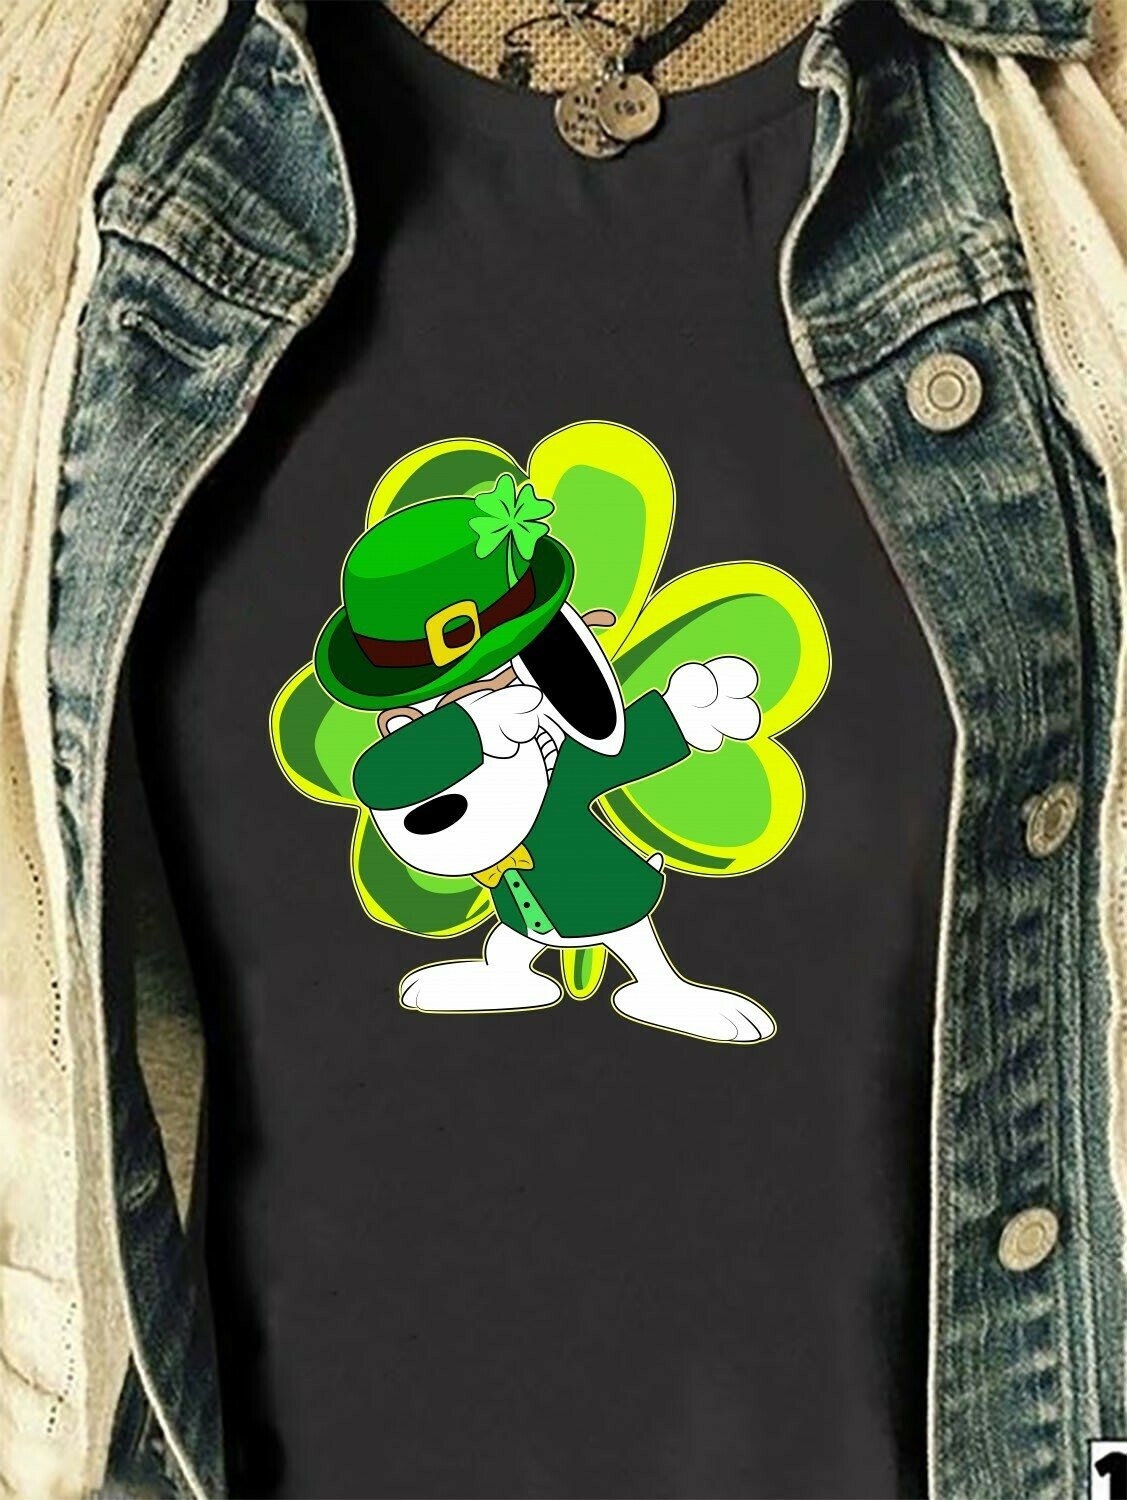 Dabbing St Patrick's Day Shamrock Leprechaun Snoopy Irish,The Peanuts Cool Stay Stylish Four Leaf Clover  T-Shirt Hoodie Sweatshirt Sweater Tee Kids Youth Gifts Jolly Family Gifts